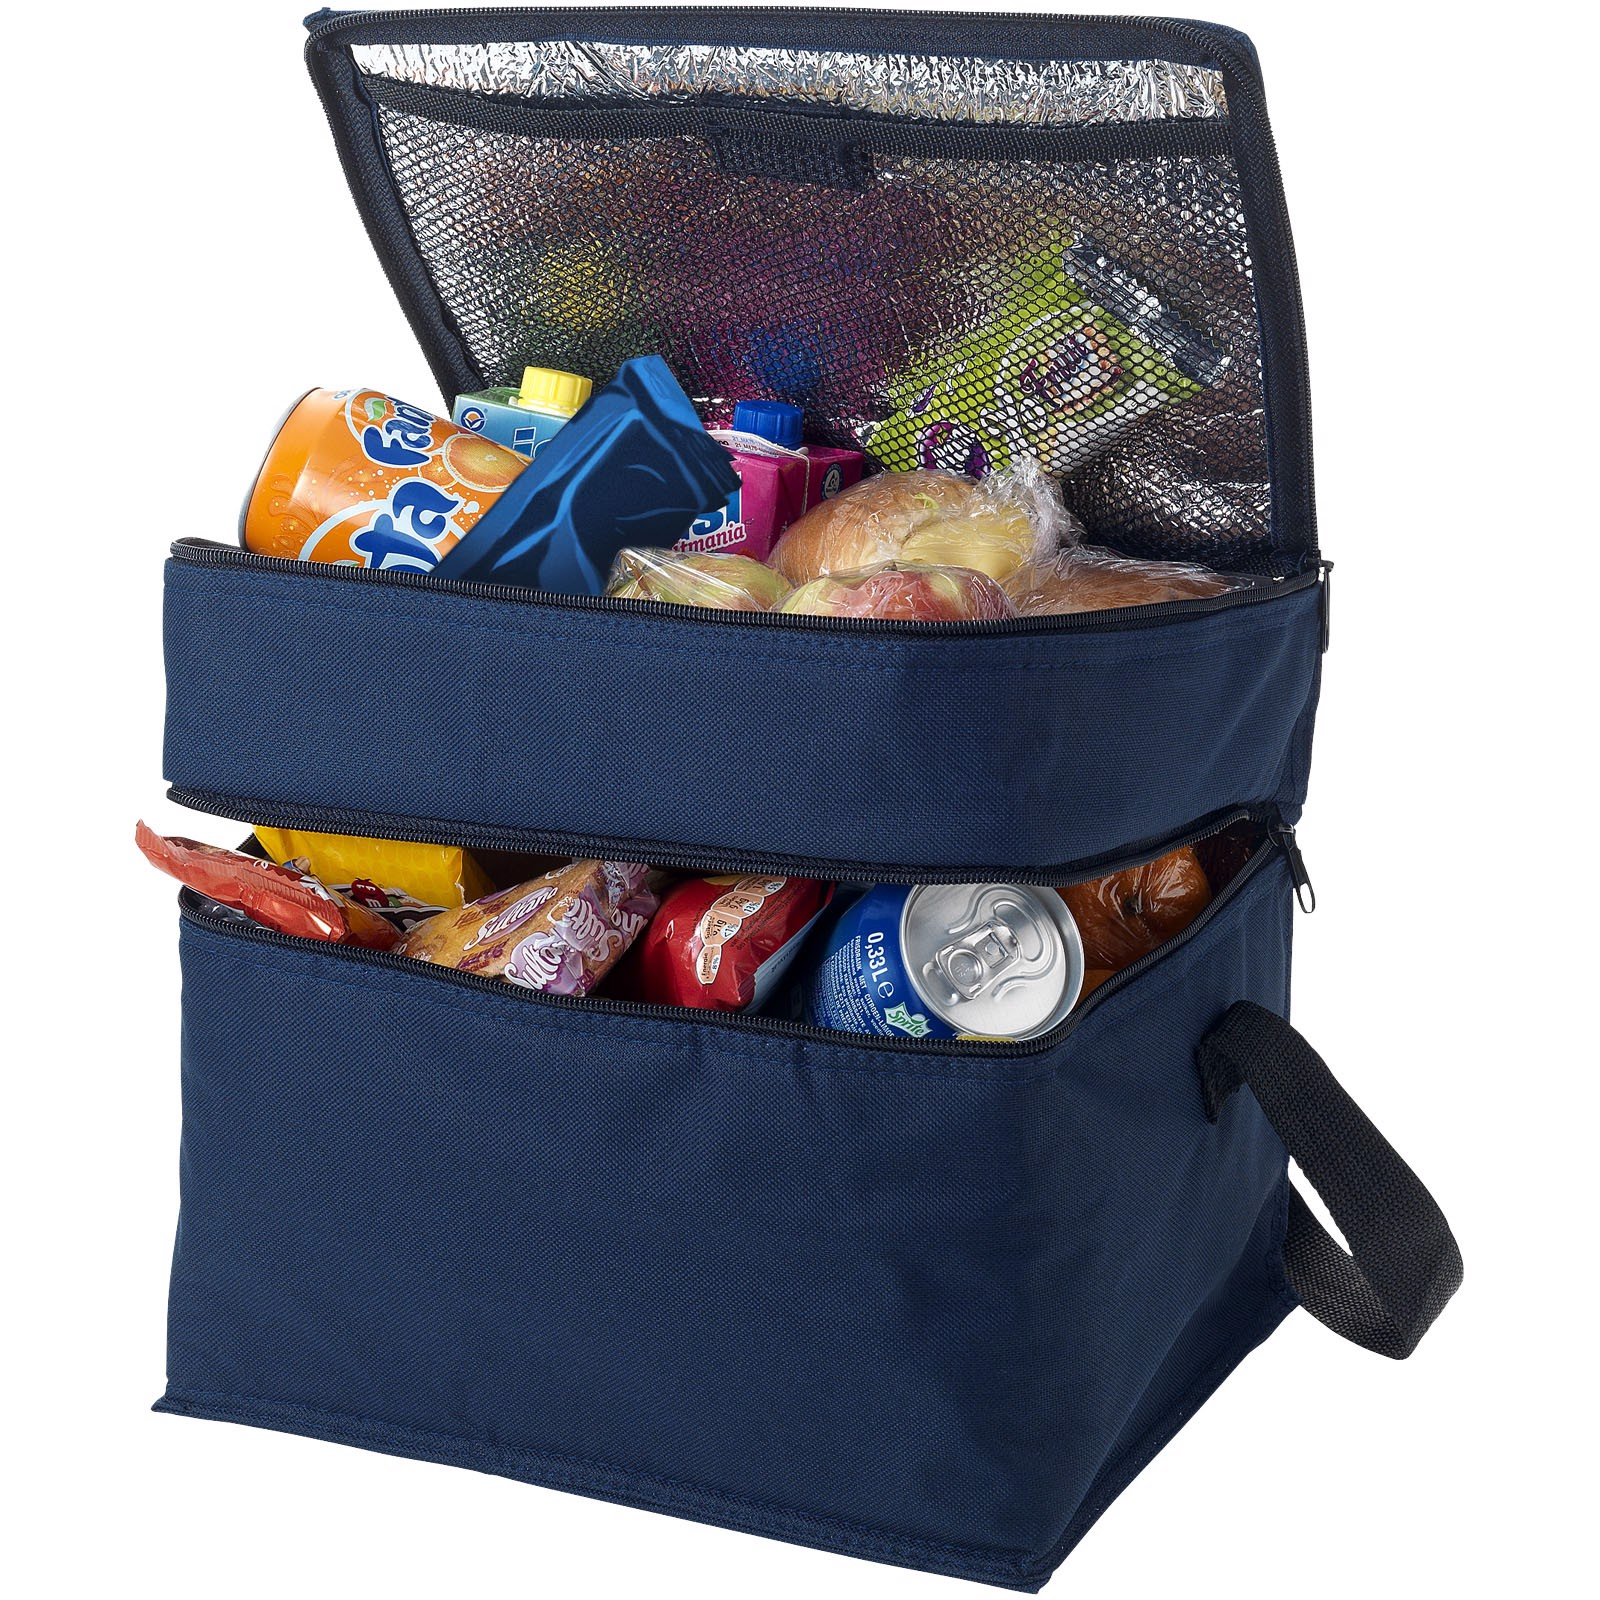 Oslo 2-zippered compartments cooler bag - Navy